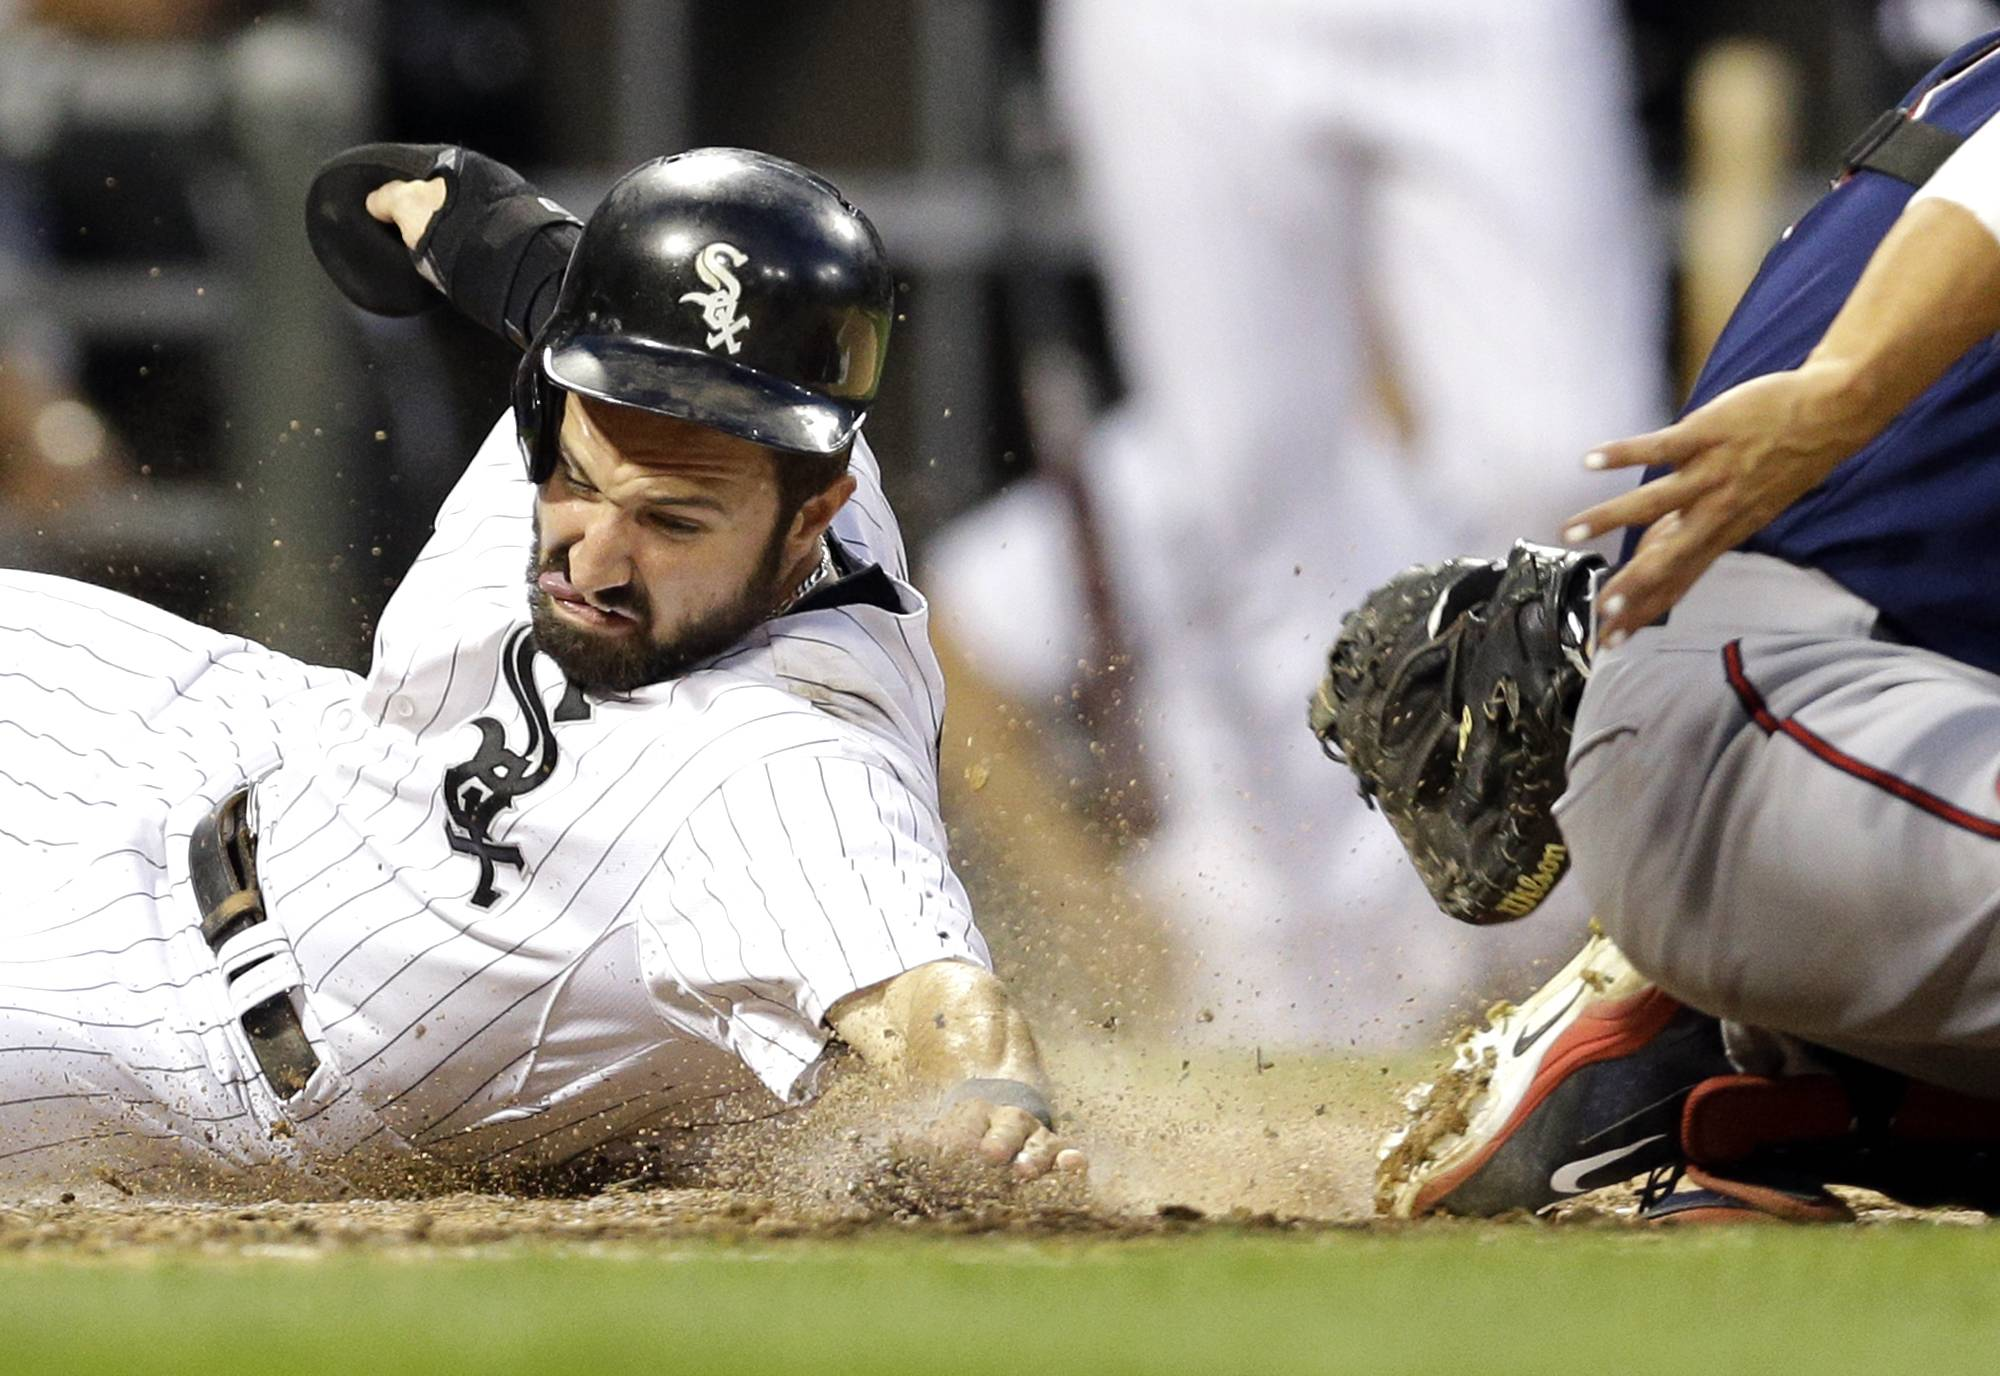 Chicago White Sox's Adam Eaton, left, scores on a double hit by Gordon Beckham as Minnesota Twins catcher Kurt Suzuki applies a late tag during Saturday's game at U.S. Cellular Field. The Sox lost 8-6.